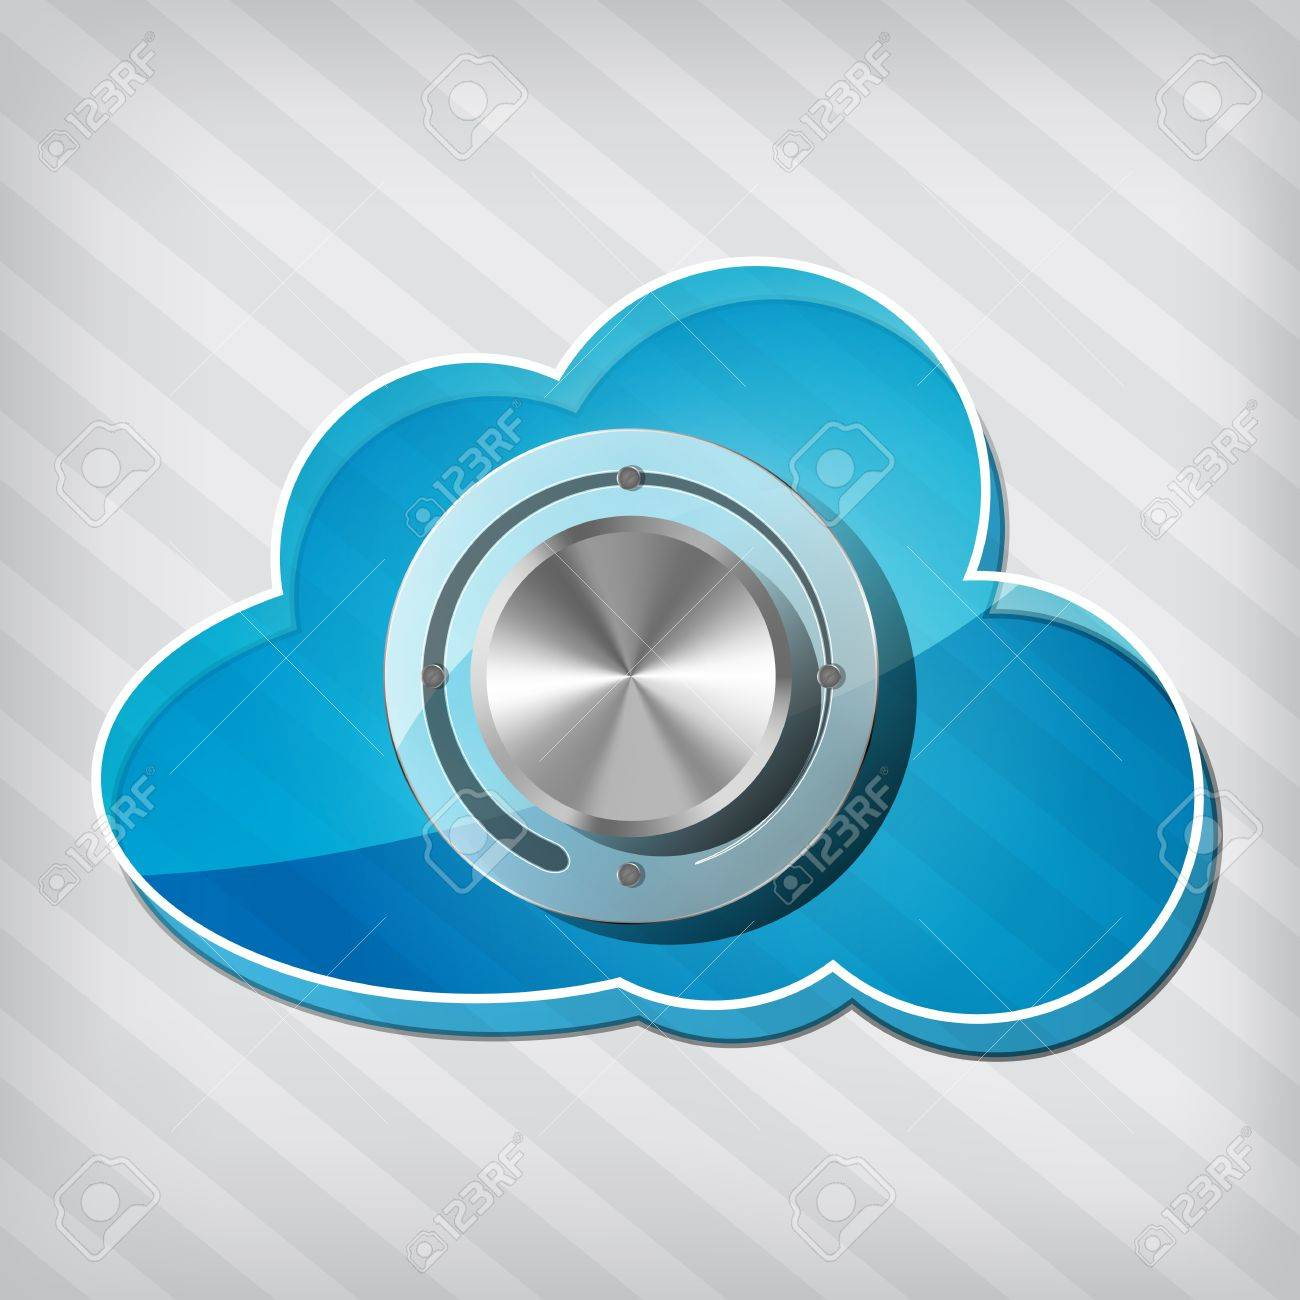 transparency blue cloud computing icon with chrome volume knob on a stripped background Stock Vector - 15476435